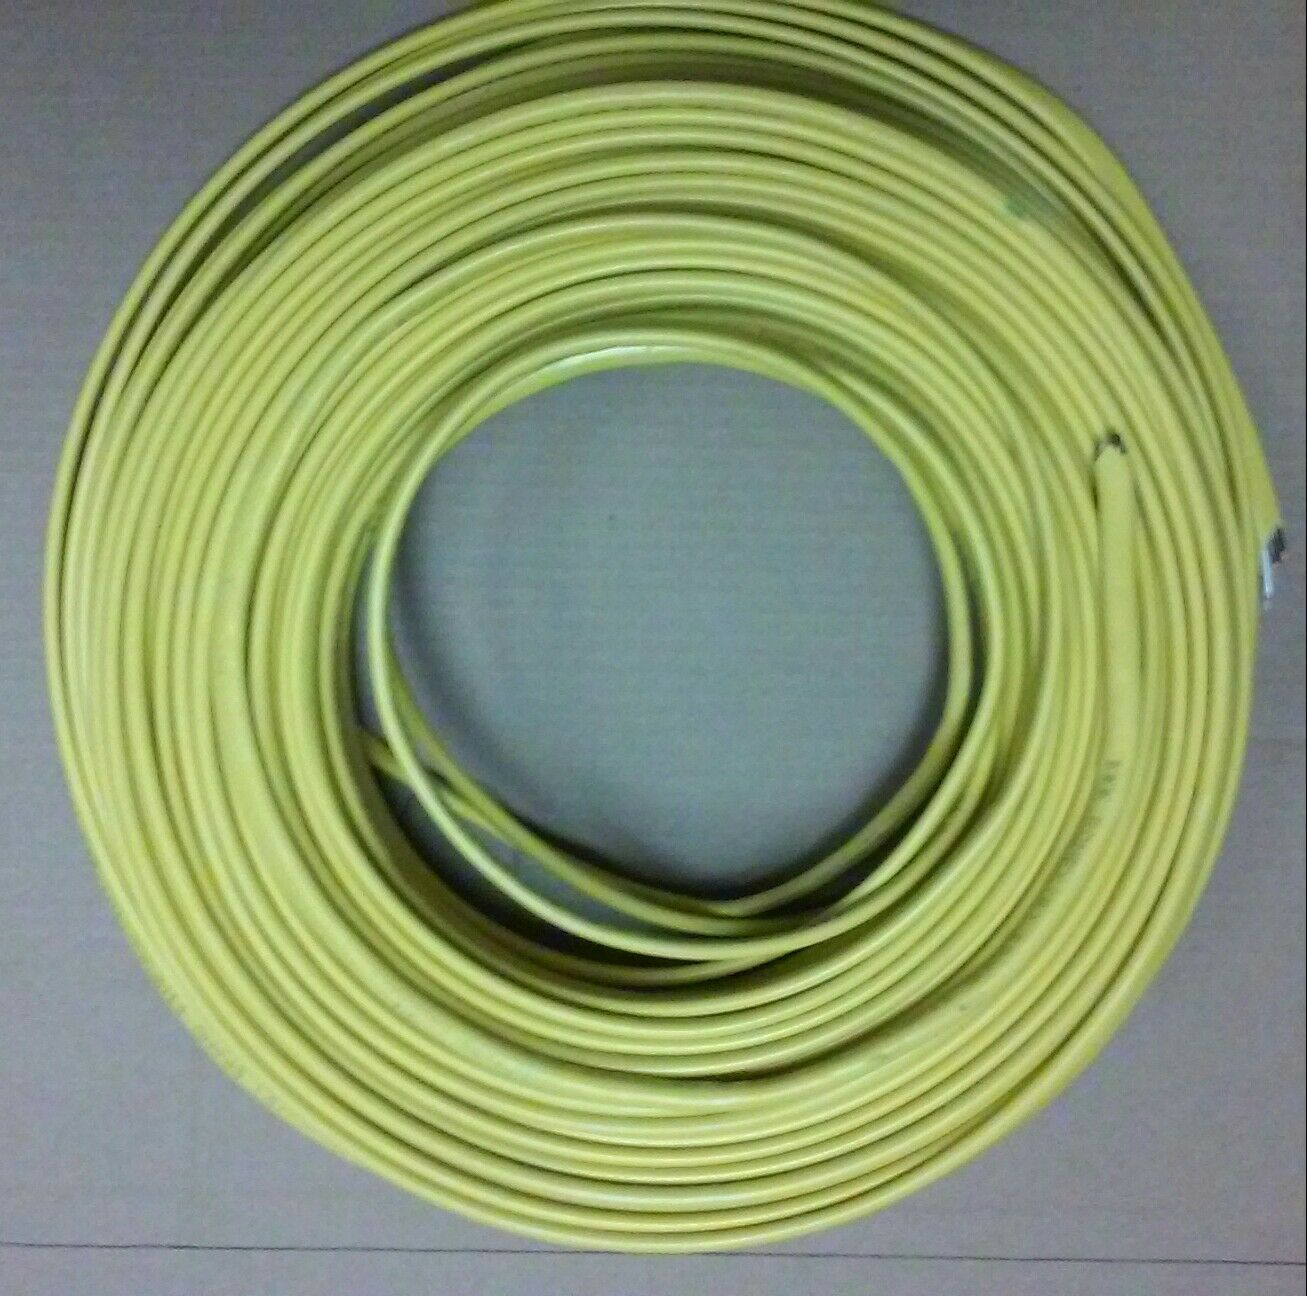 12 2 Nm B Wire About Wiring Diagram 100 Ft Yellow Solid Simpull Nmb Wire28828228 The Home Depot Indoor Romex Electrical Cable With Ground 75